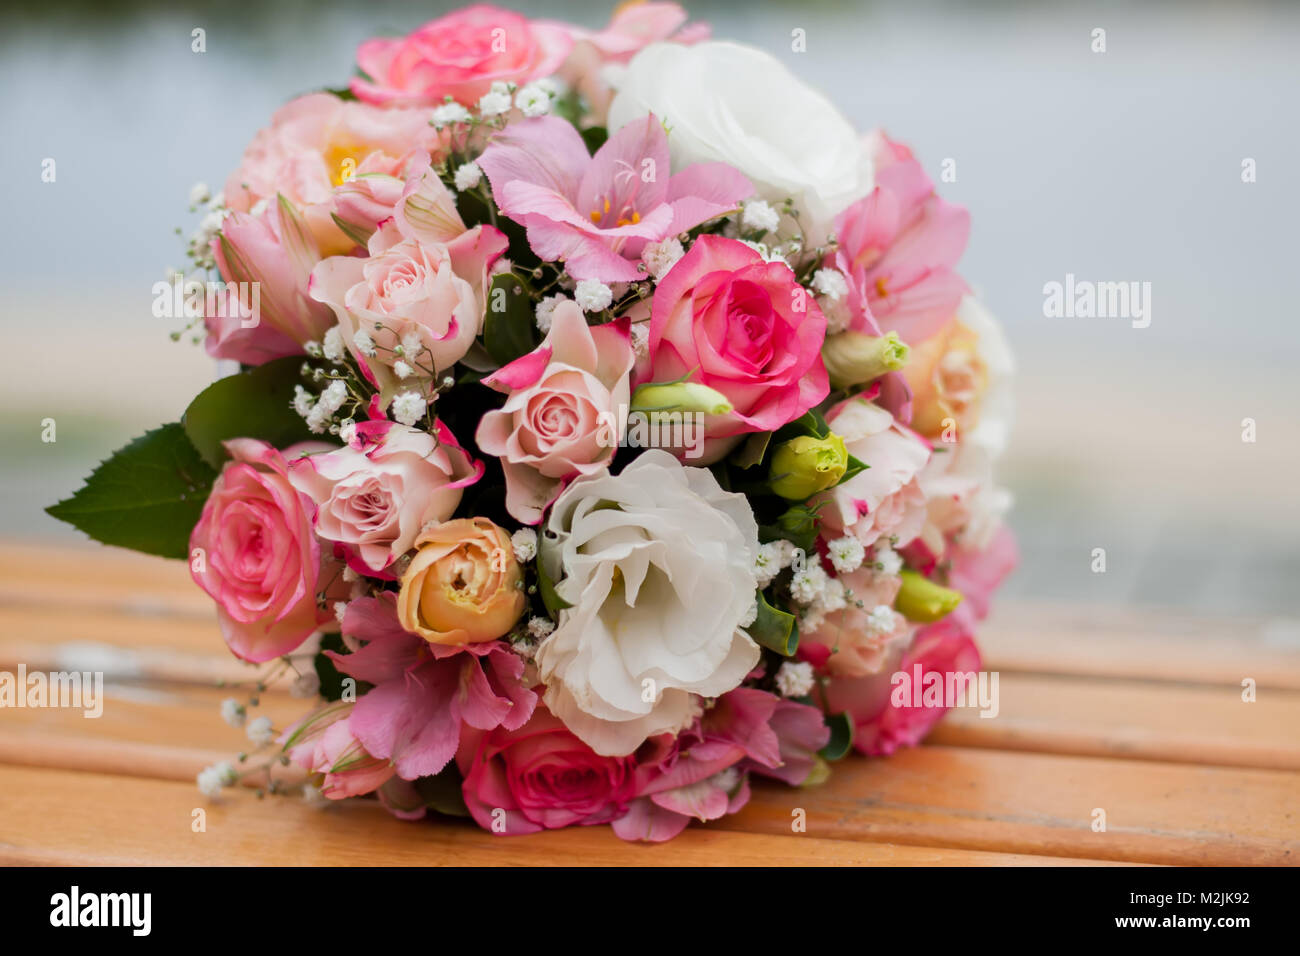 wedding bouquet of flowers lying on a bench, on a blurred background ...